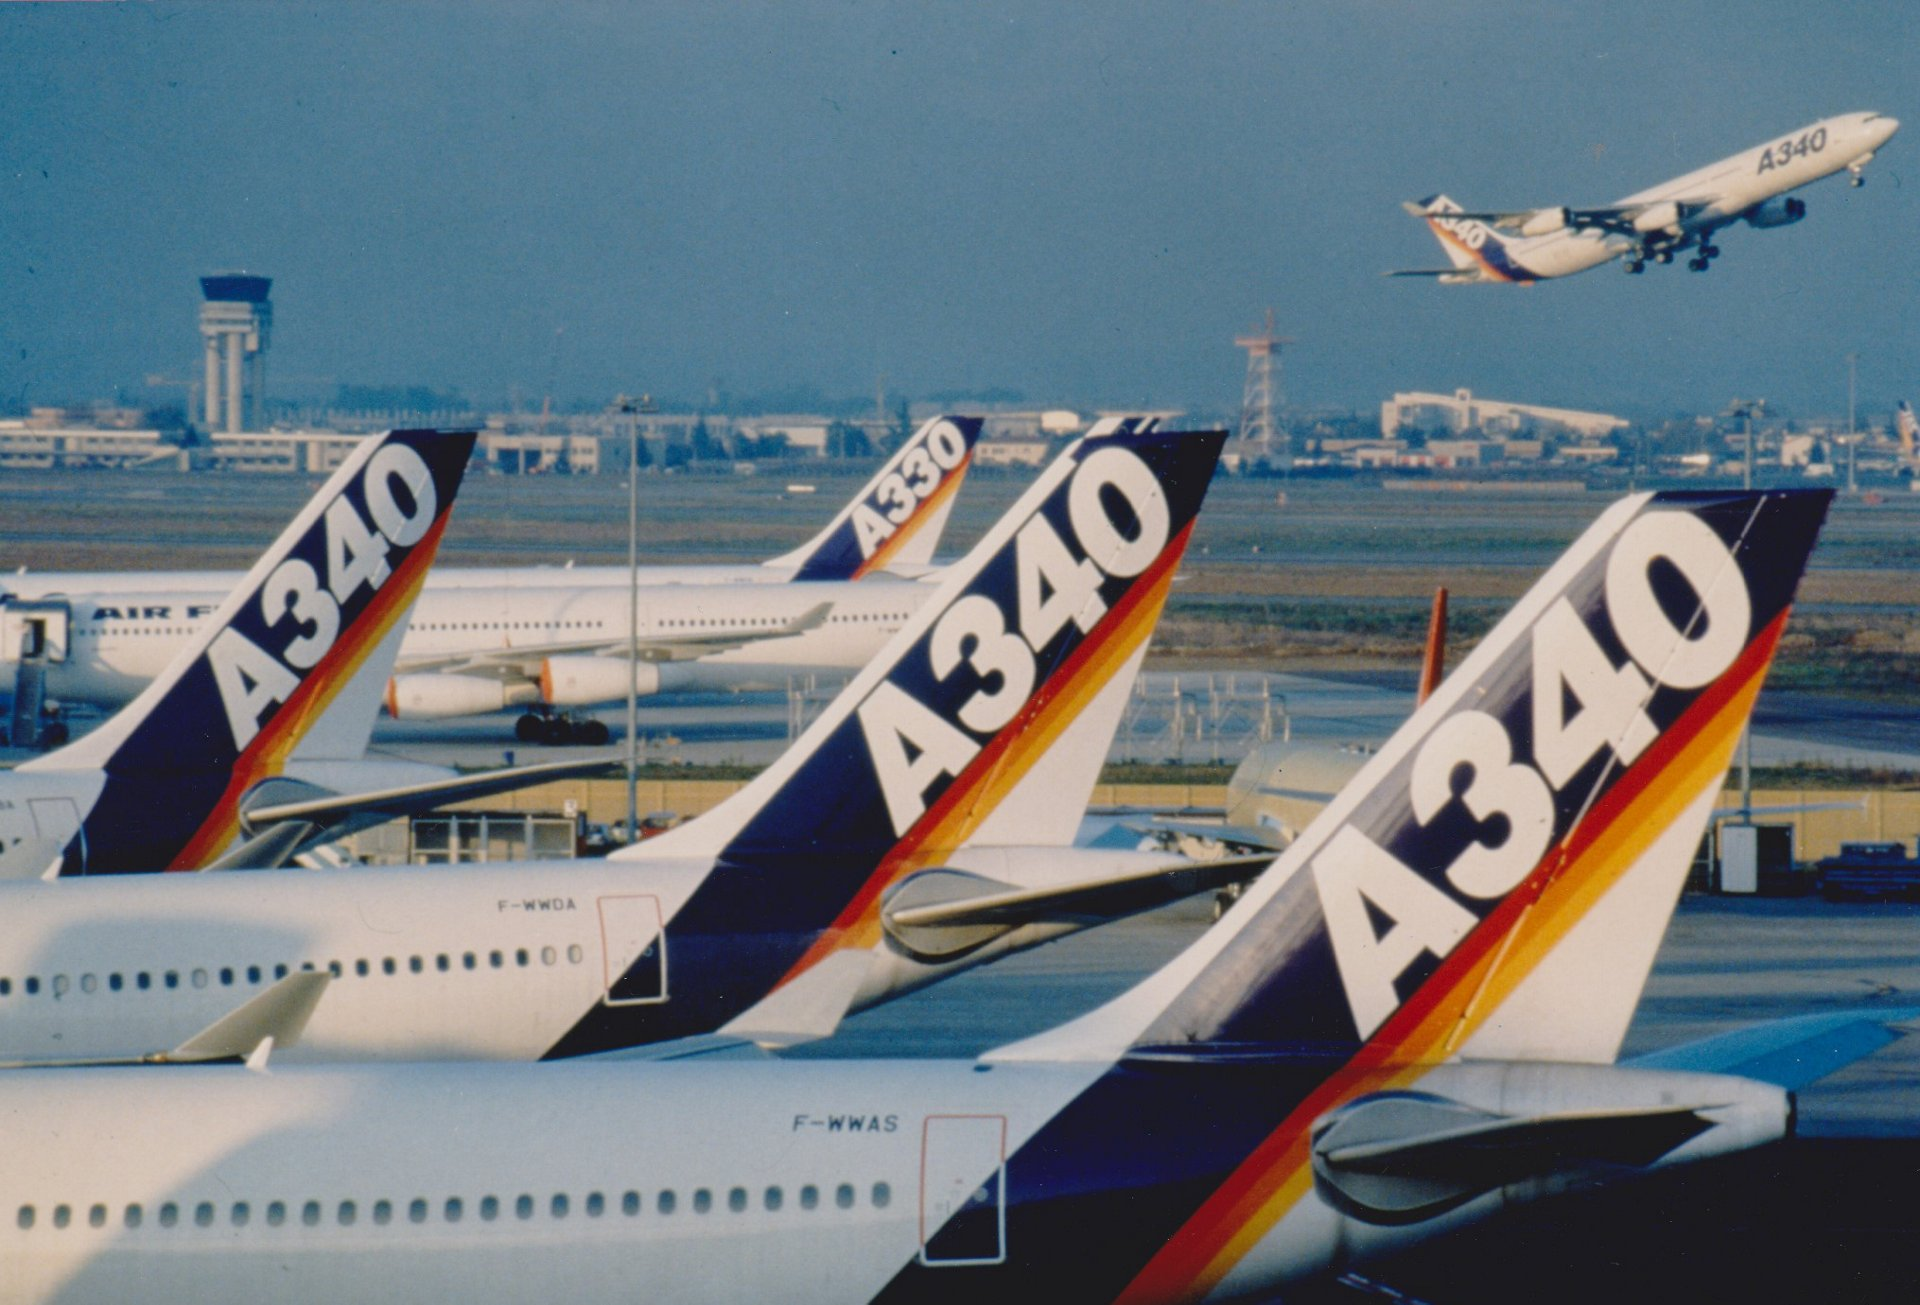 Read about the history of the A330 and A340 jetliners